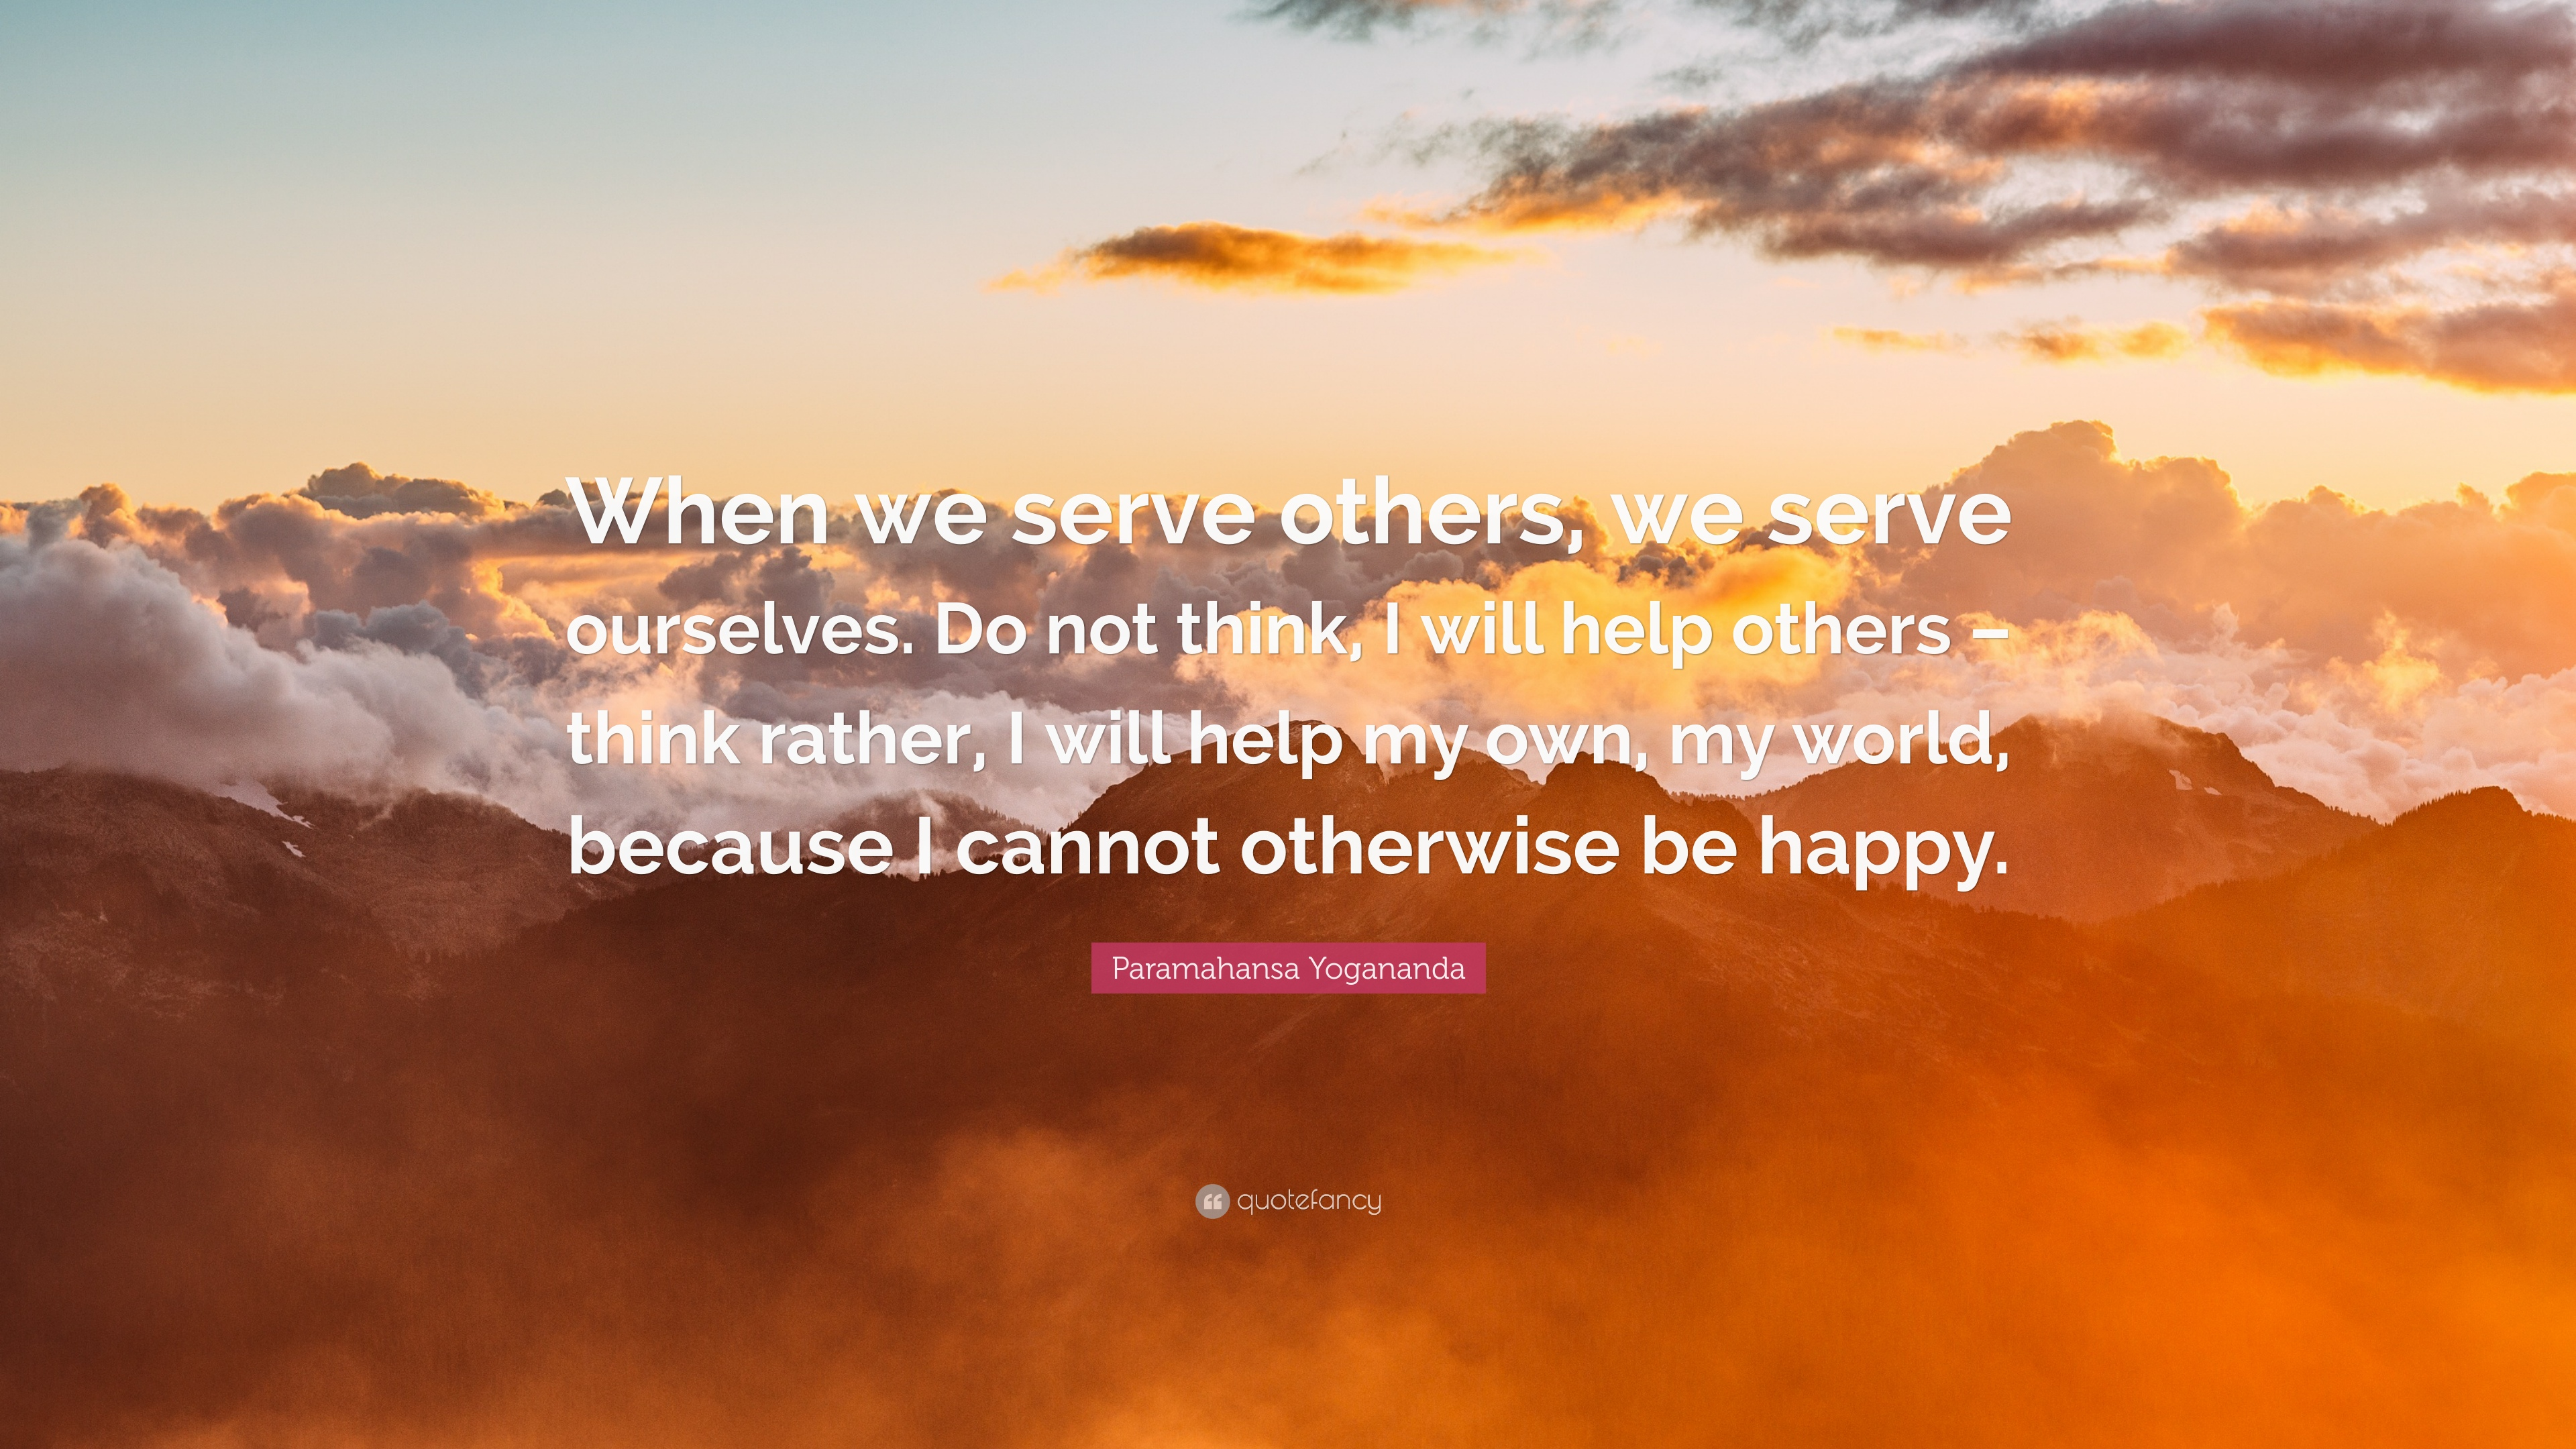 Helping others quotes 40 wallpapers quotefancy helping others quotes when we serve others we serve ourselves do not ccuart Choice Image